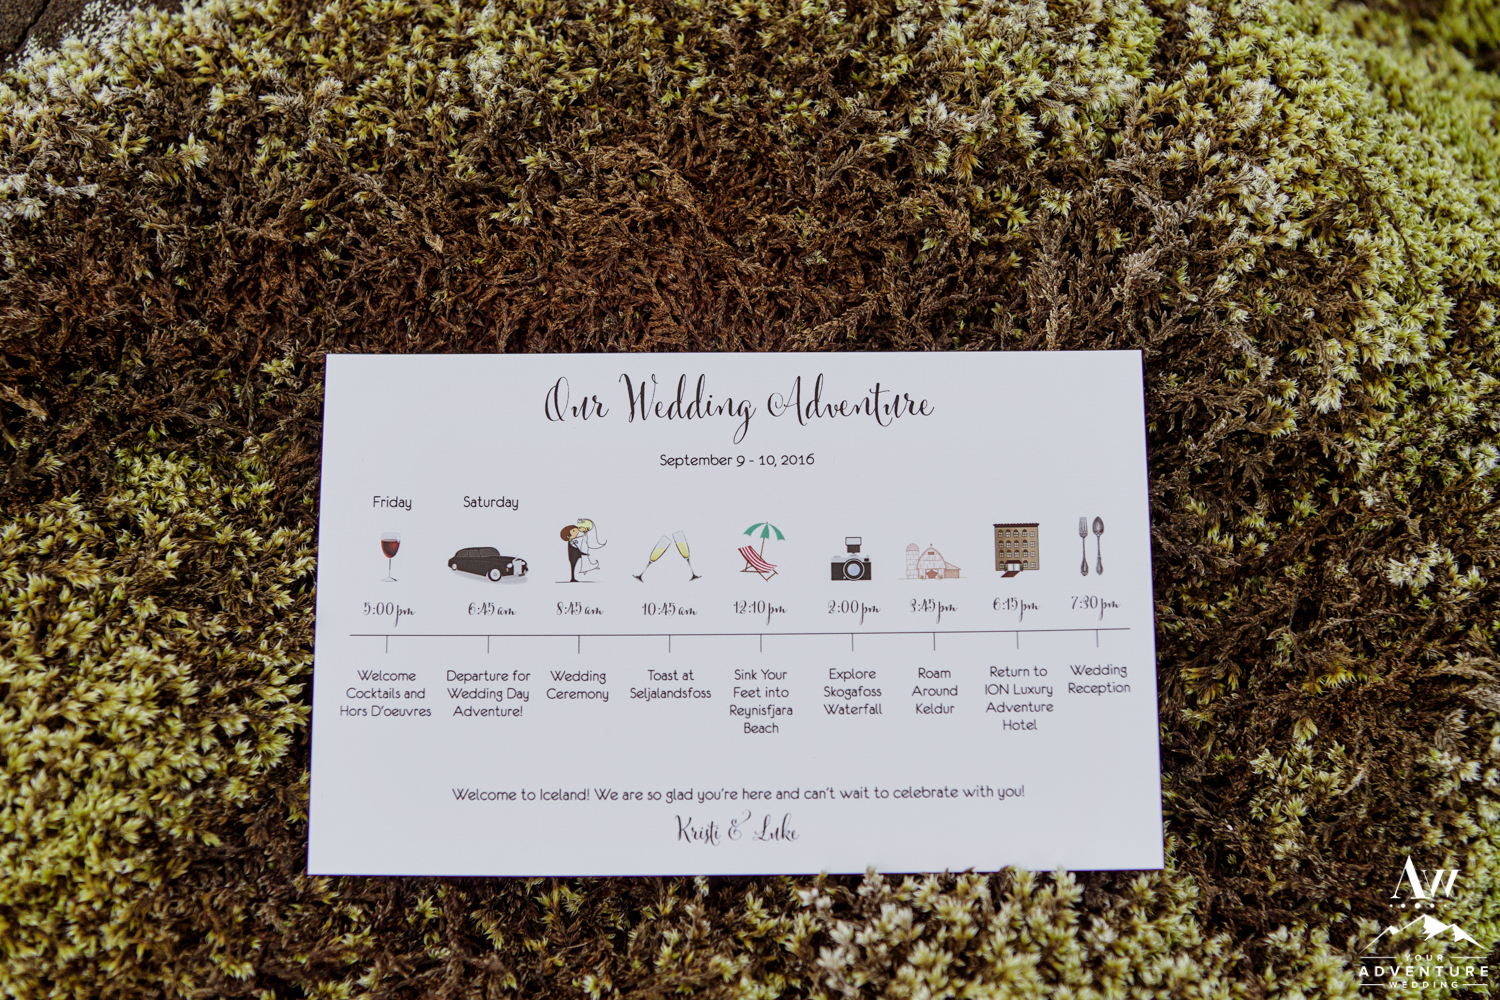 iceland-wedding-timeline-cards